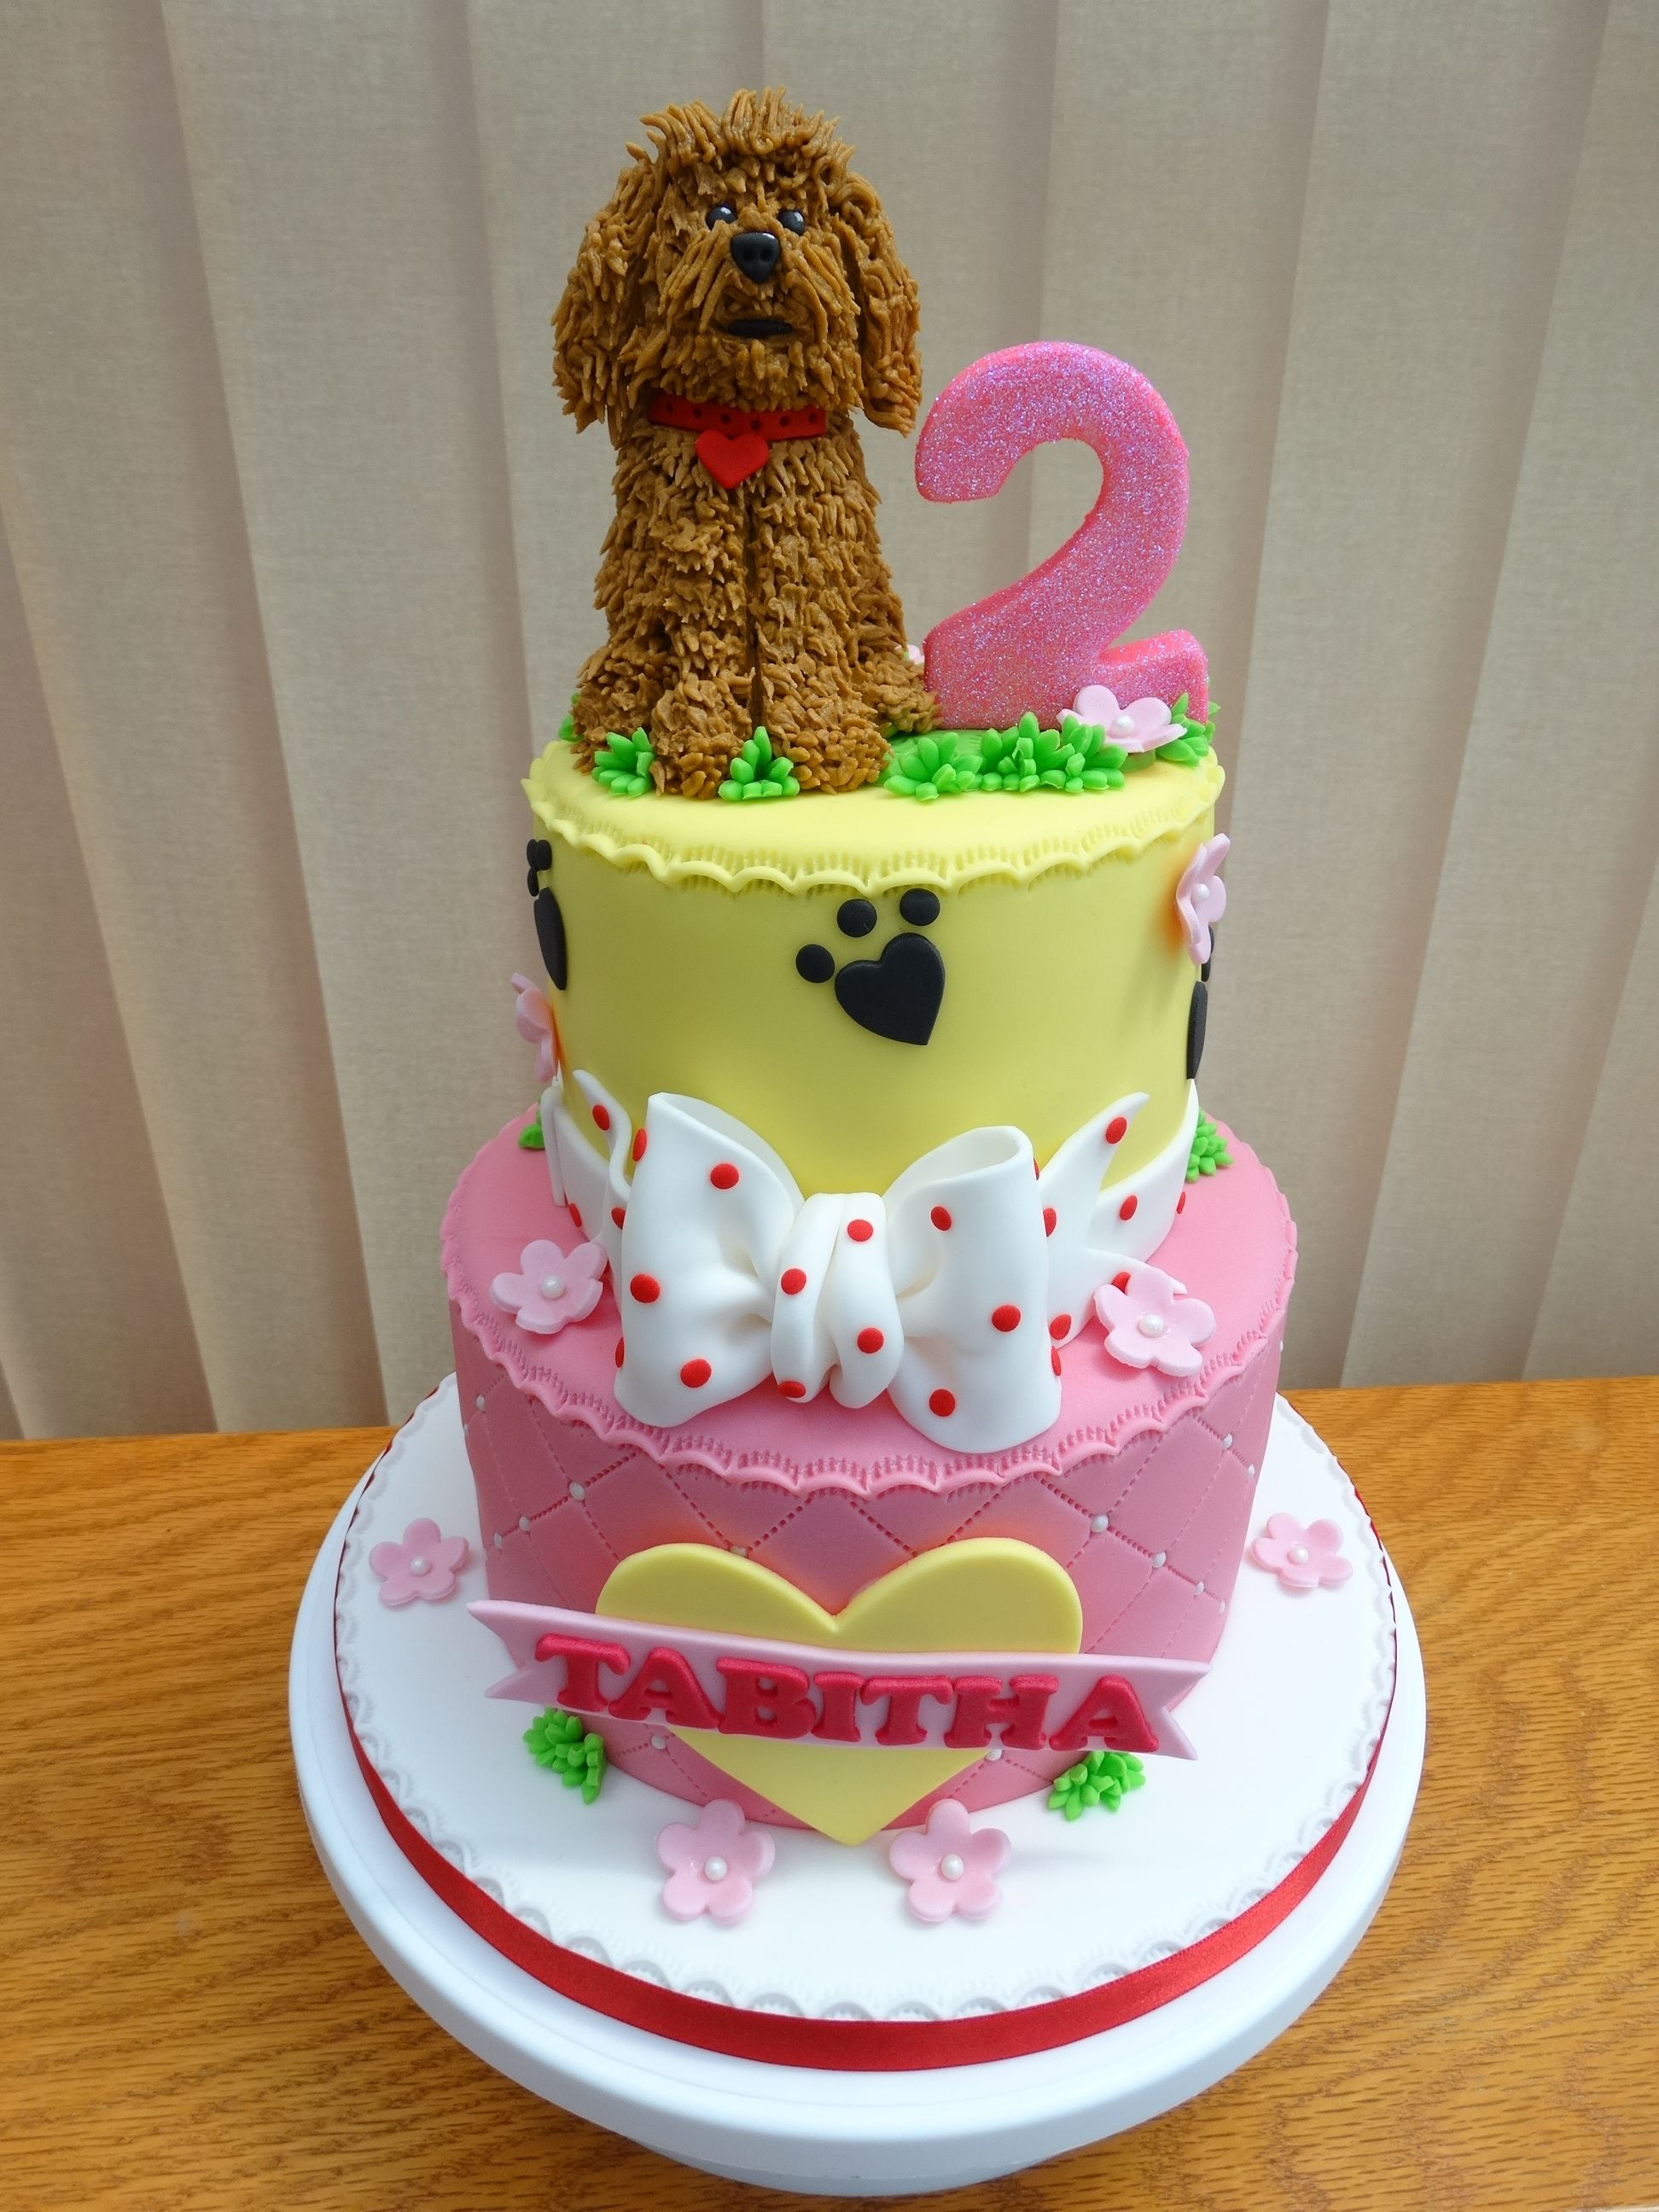 Terrific Waffle The Wonder Dog Cake Xmcx Dog Cakes Dog Birthday Cake Funny Birthday Cards Online Hendilapandamsfinfo